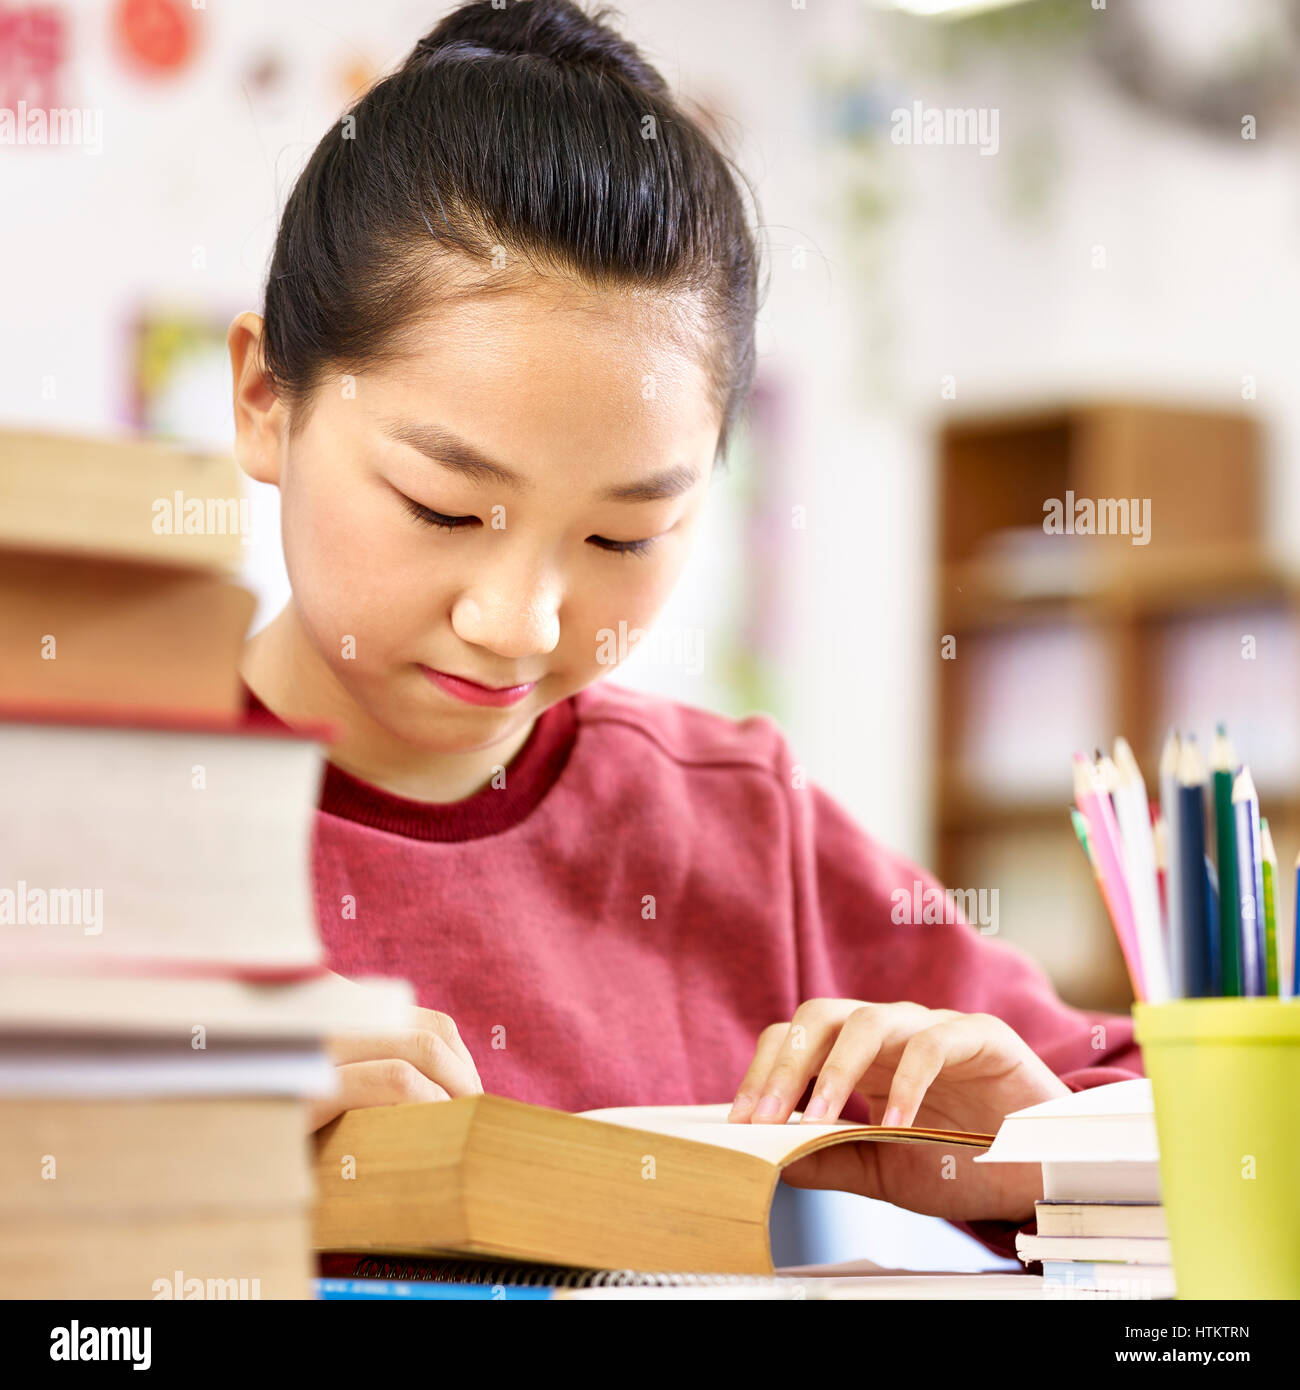 asian elementary schoolgirl reading a thick book in classroom. - Stock Image